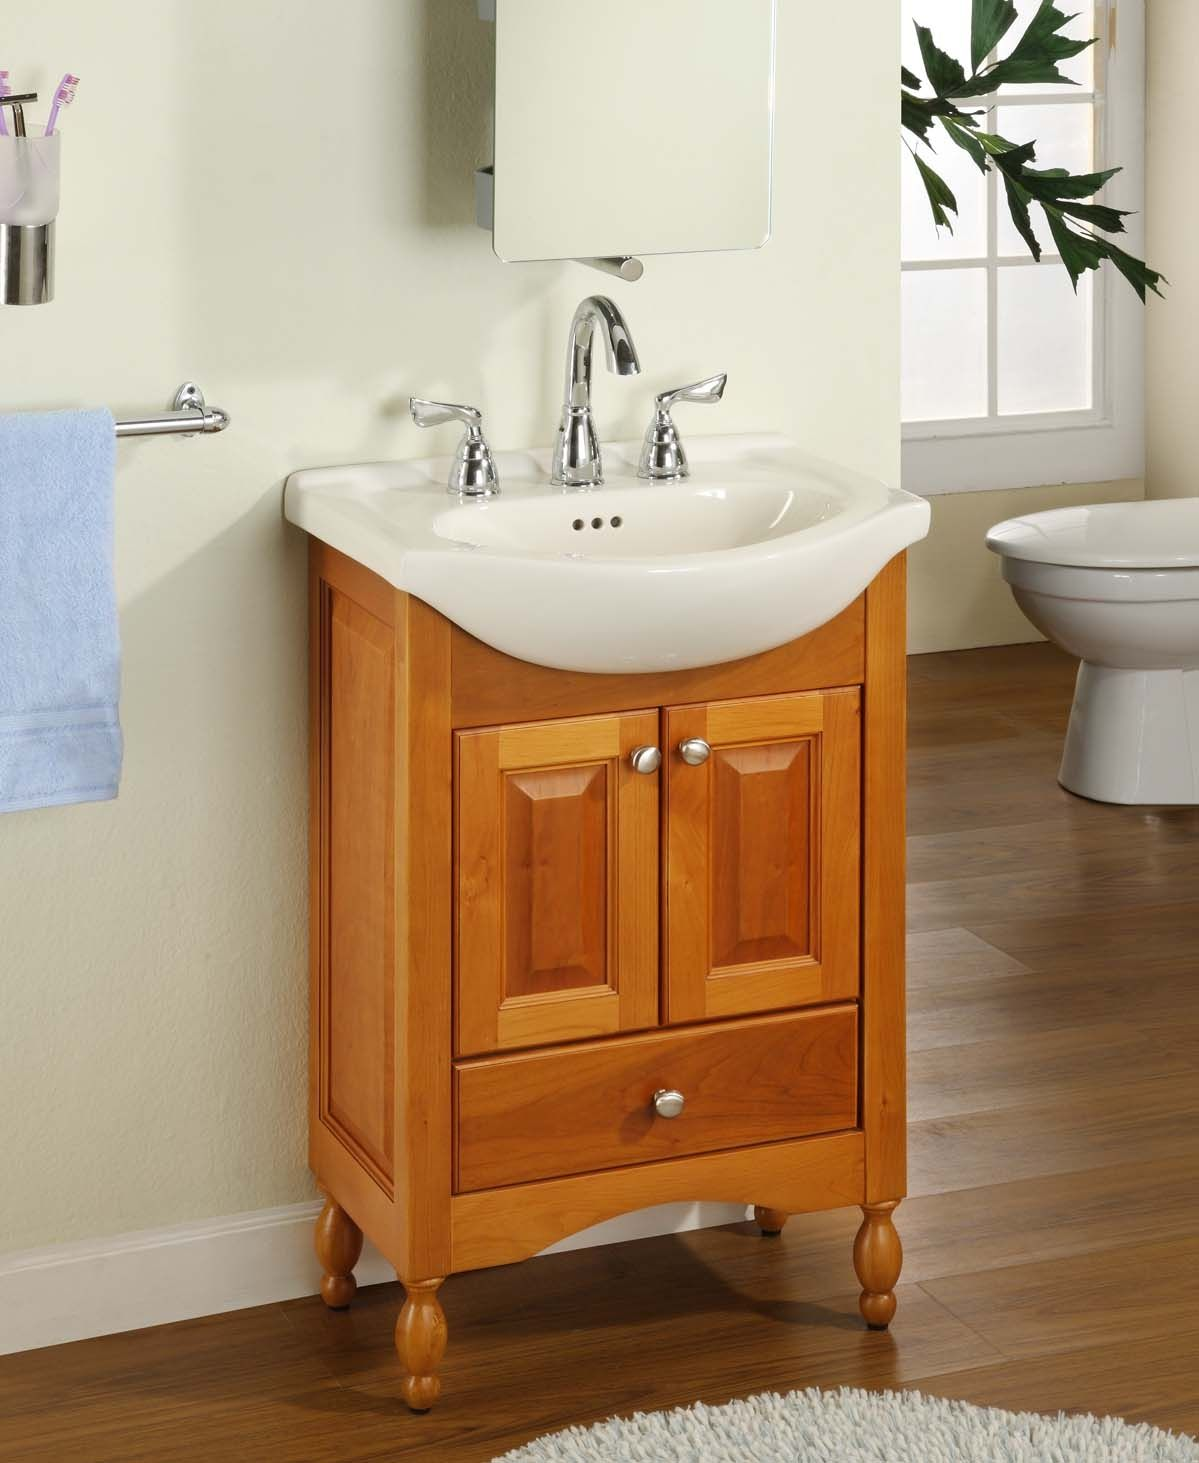 Shallow Depth Vanities For Bathrooms There Are Different Types Nowadays Of Vanities Which C Narrow Bathroom Narrow Bathroom Vanities Small Bathroom Vanities